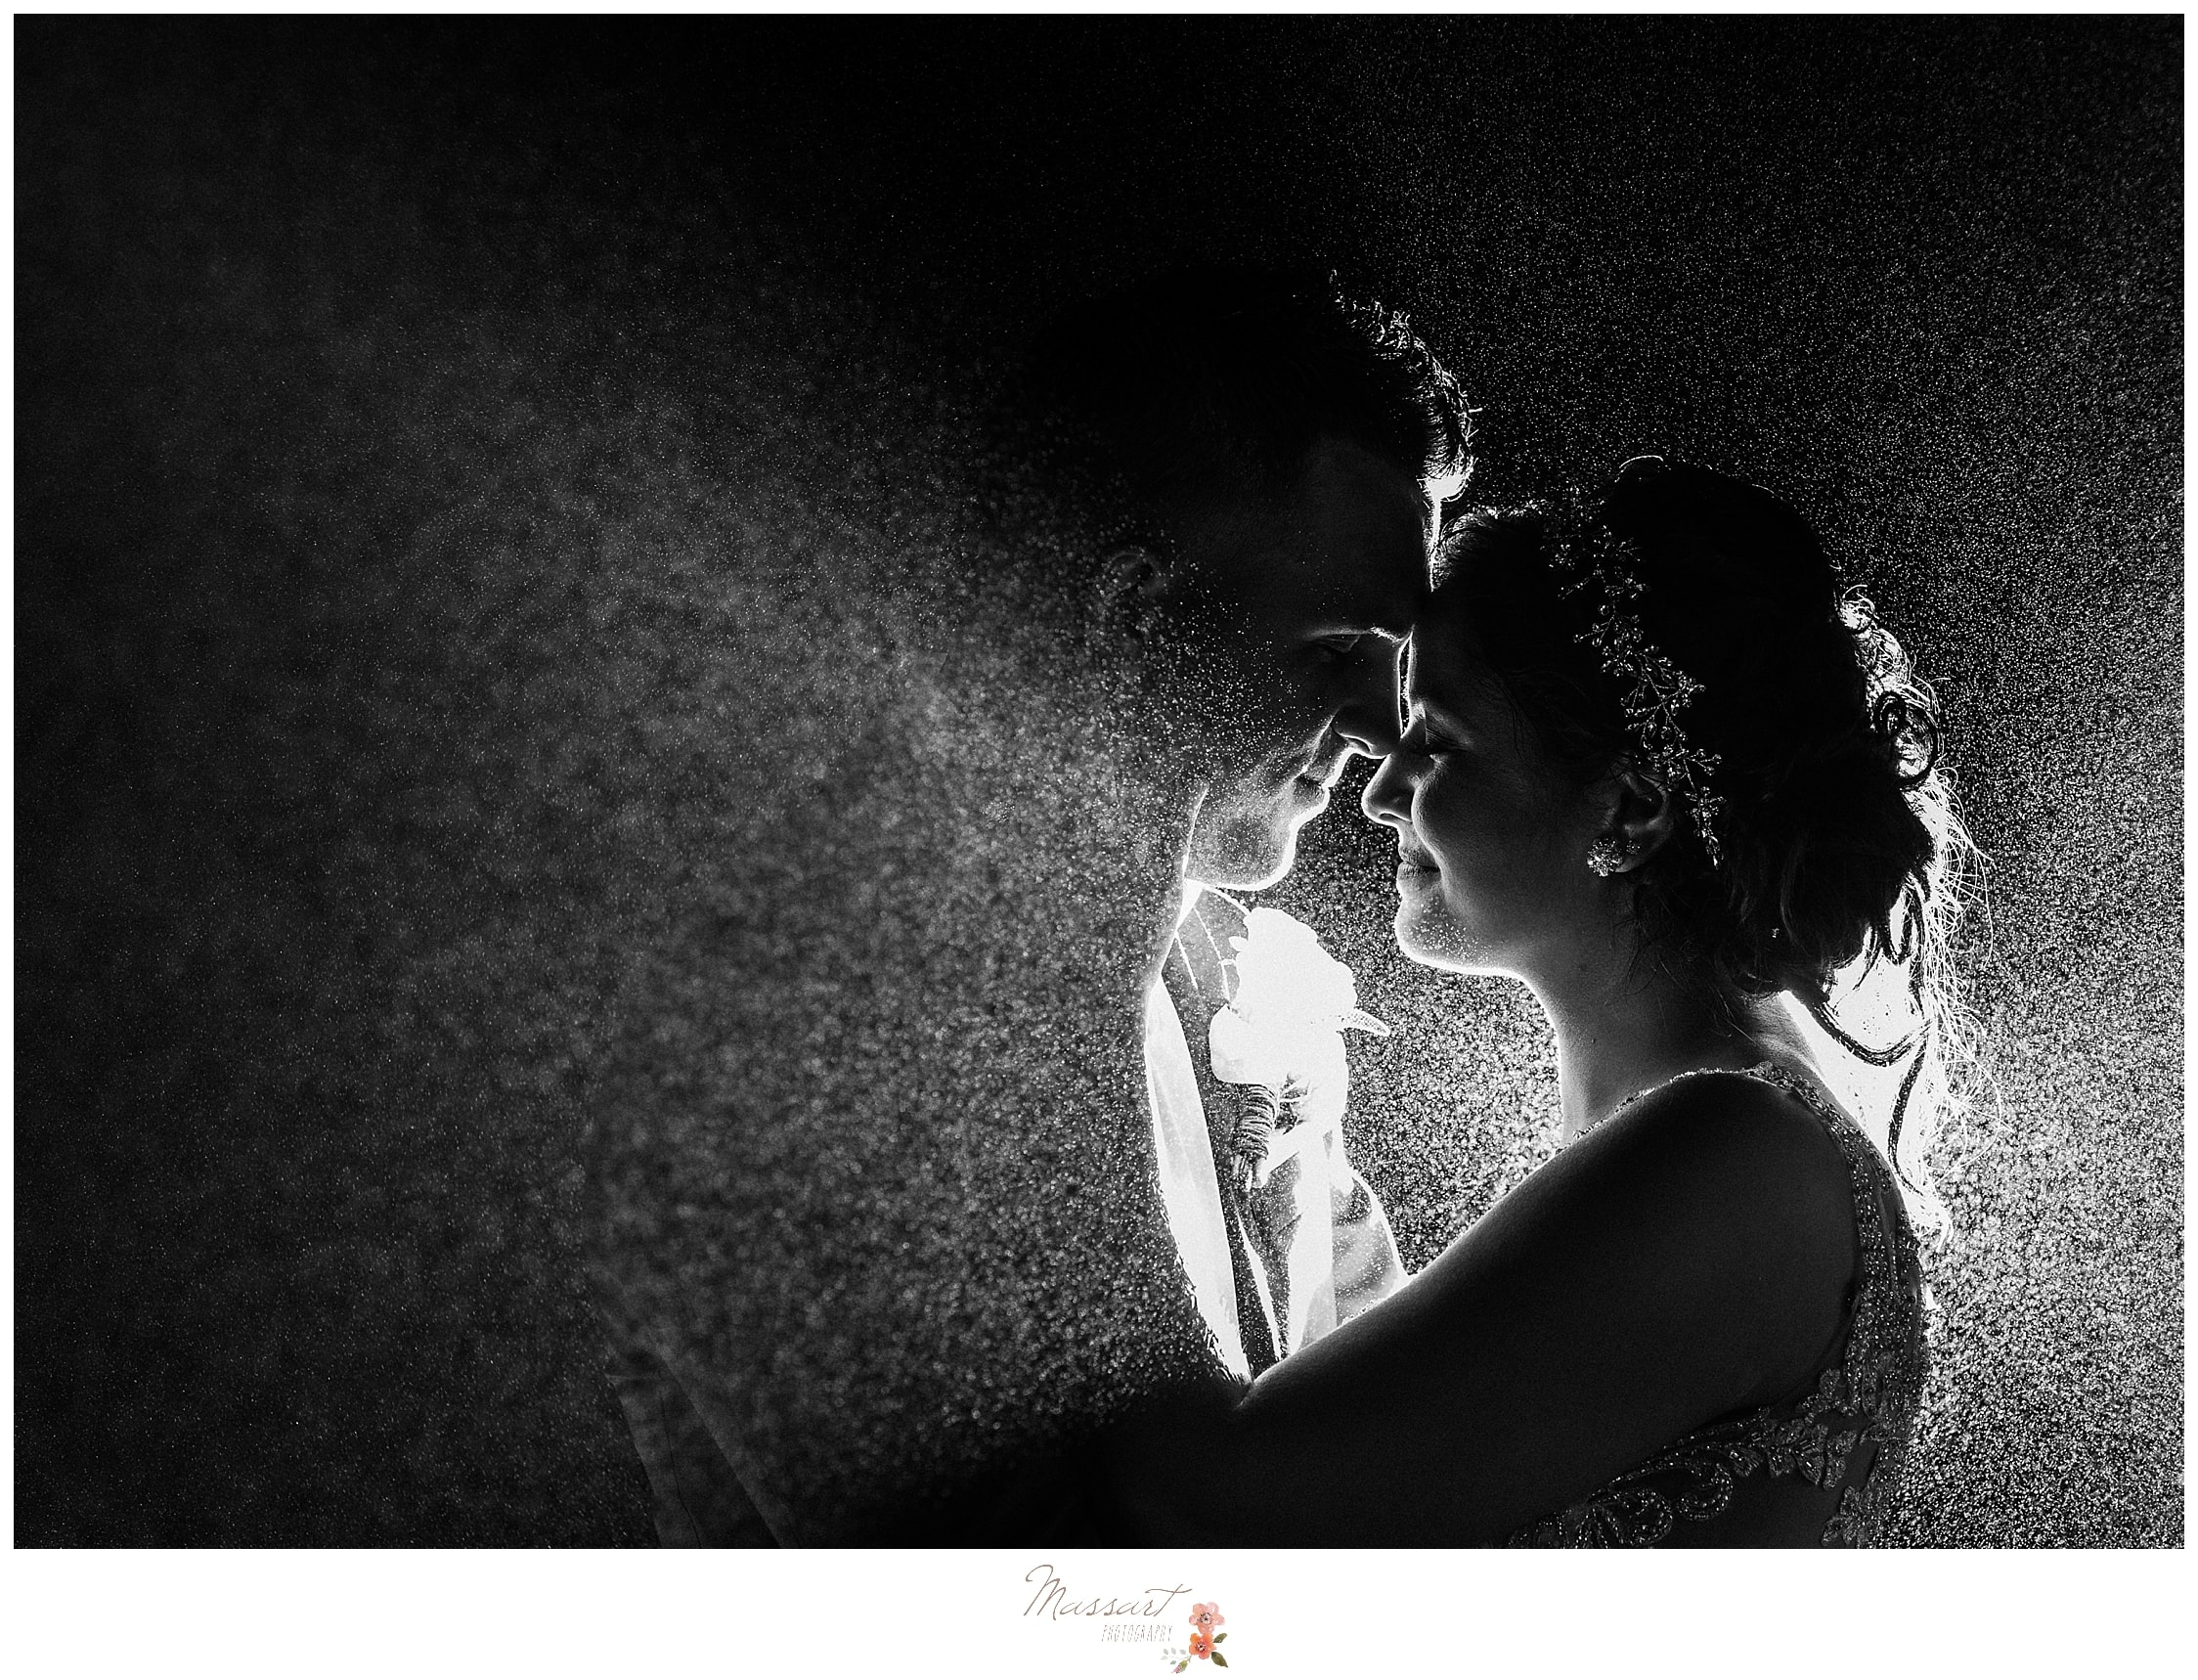 Rainy wedding nighttime portrait photographed by RI wedding photographers Massart Photography.